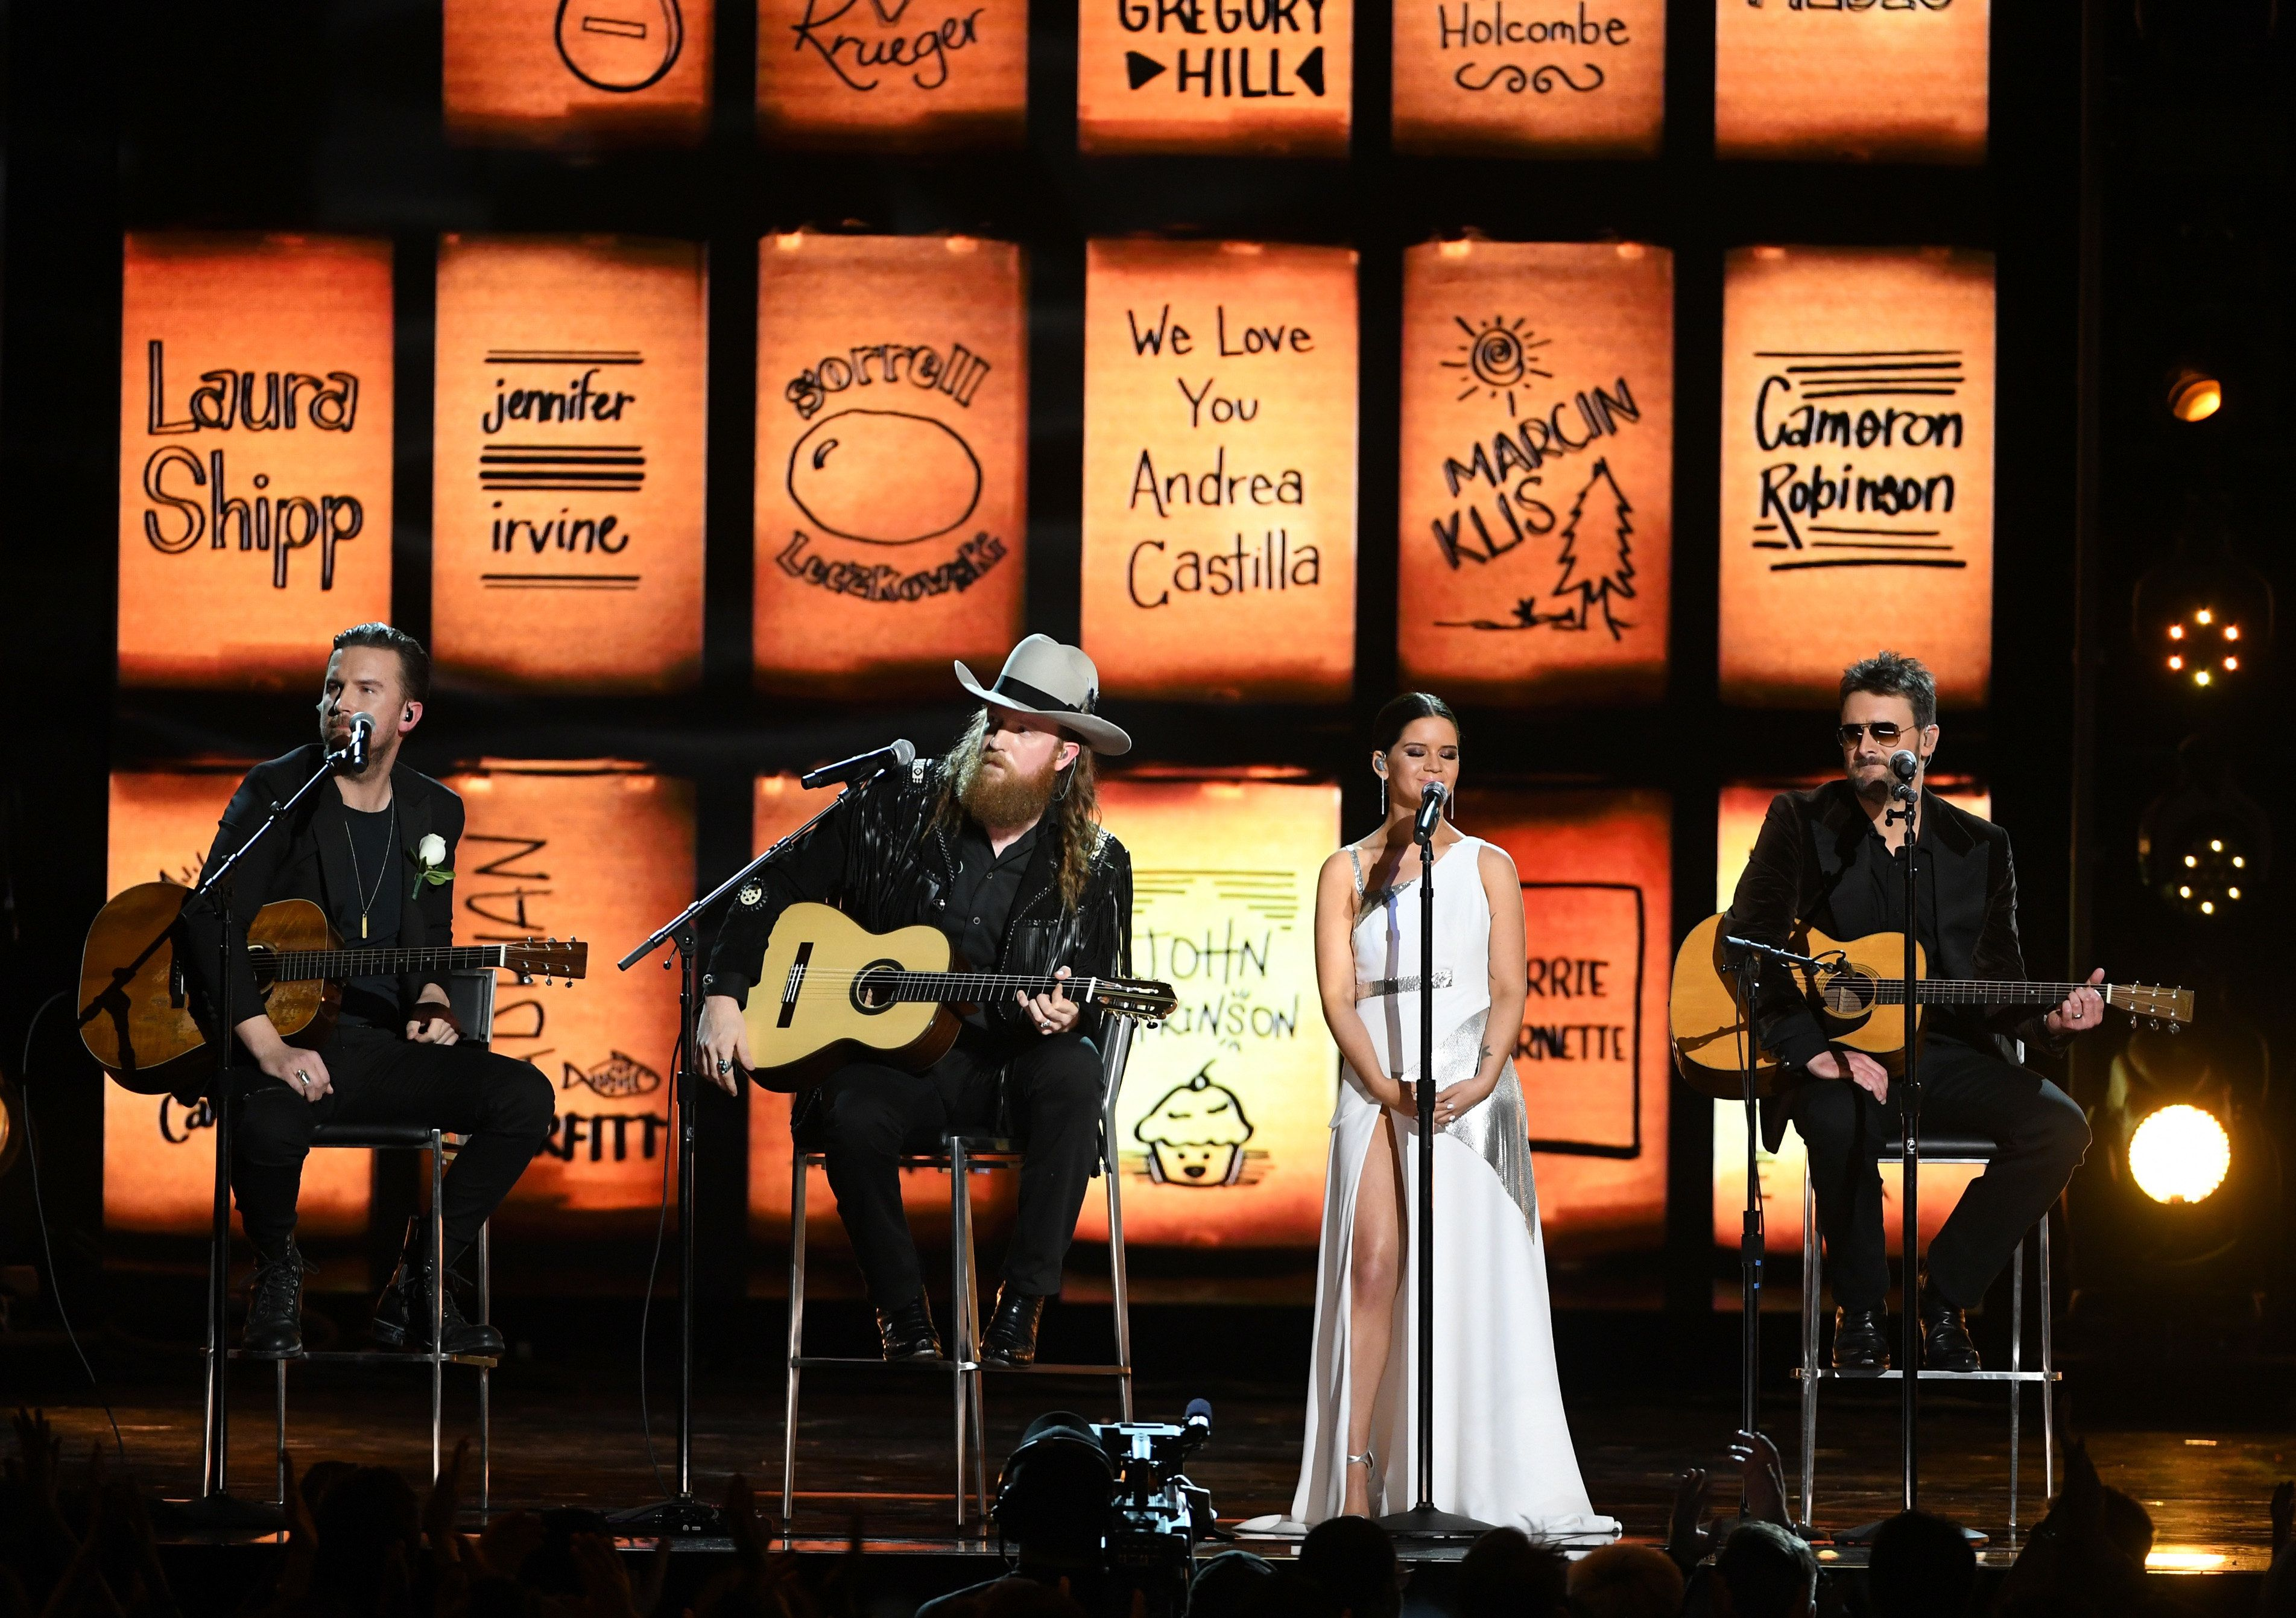 NEW YORK, NY - JANUARY 28:  (L-R) Recording artists T.J. Osborne, John Osborne, Maren Morris, and Eric Church perform onstage during the 60th Annual GRAMMY Awards at Madison Square Garden on January 28, 2018 in New York City.  (Photo by Kevin Winter/Getty Images for NARAS)